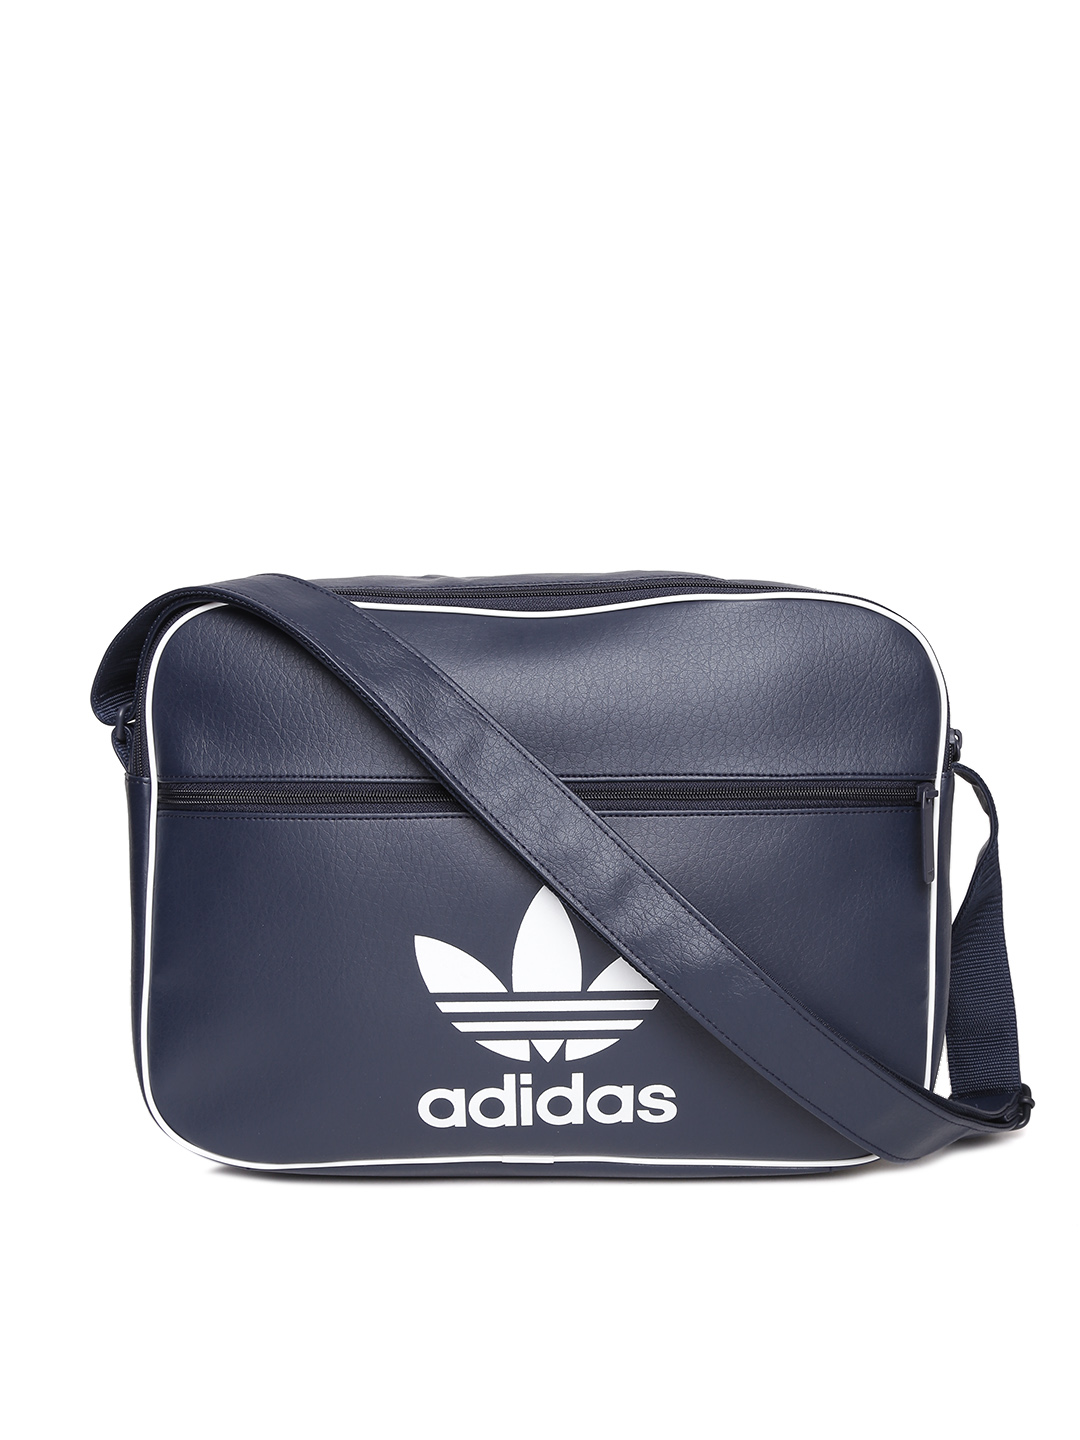 adidas messenger bag adidas messenger bags - buy adidas messenger bags online in india JNNWZJO